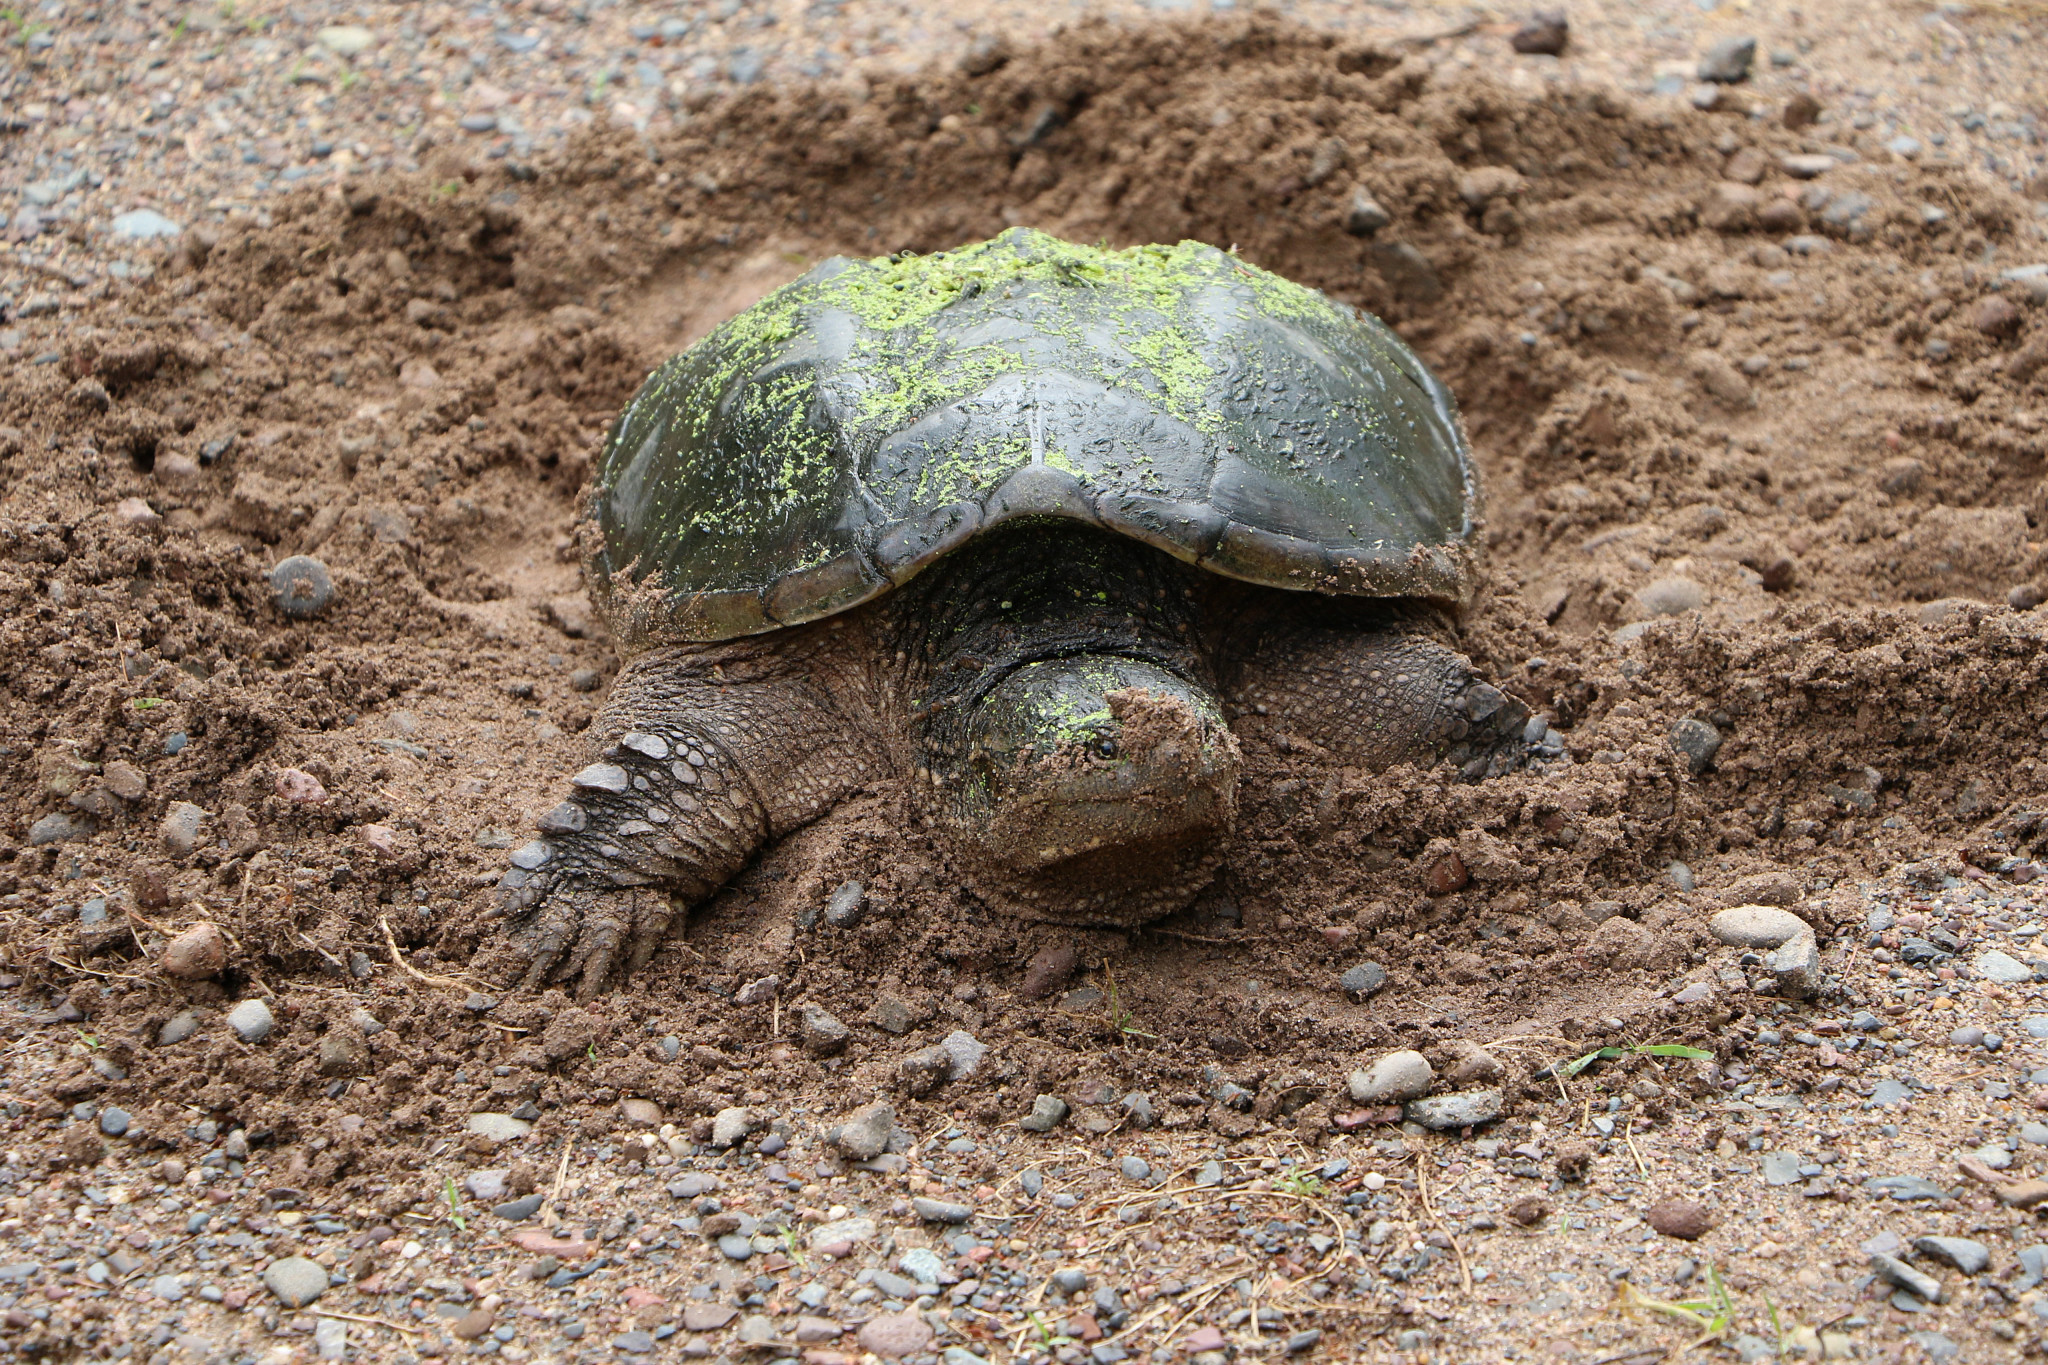 snapping turtle nesting in sand